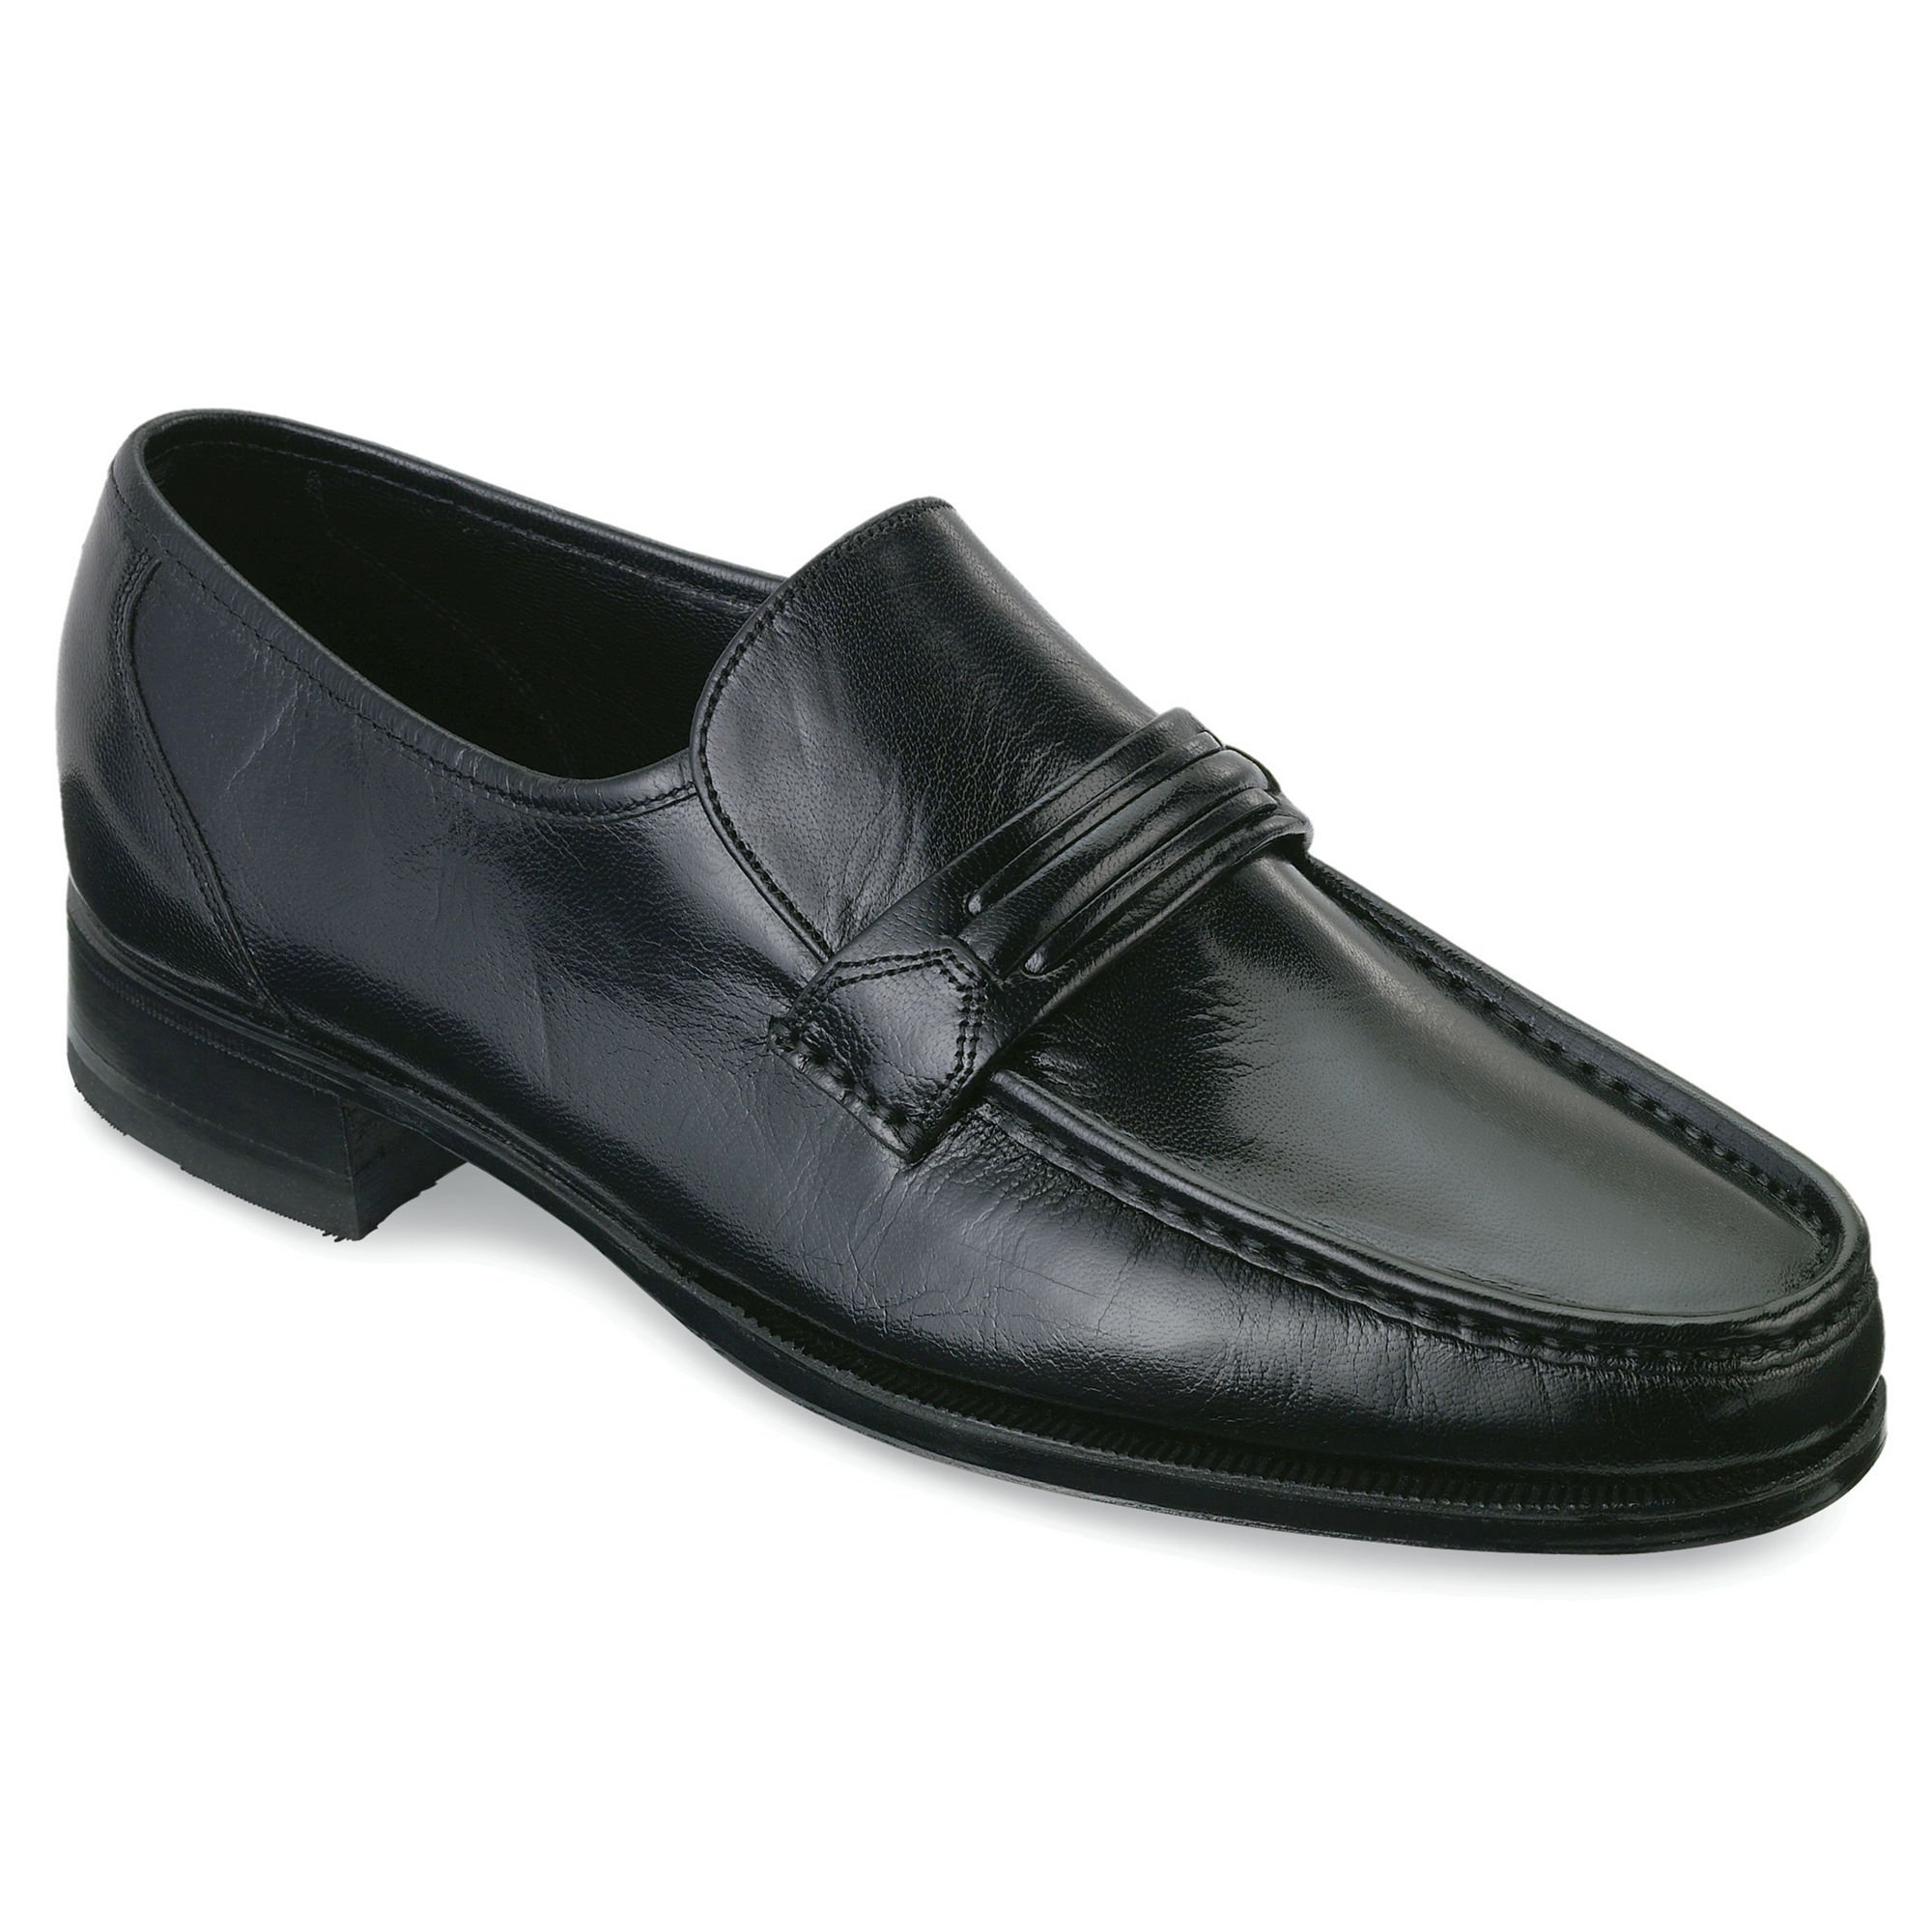 Florsheim Mens Como Tassle Black Slip-On - 15 D